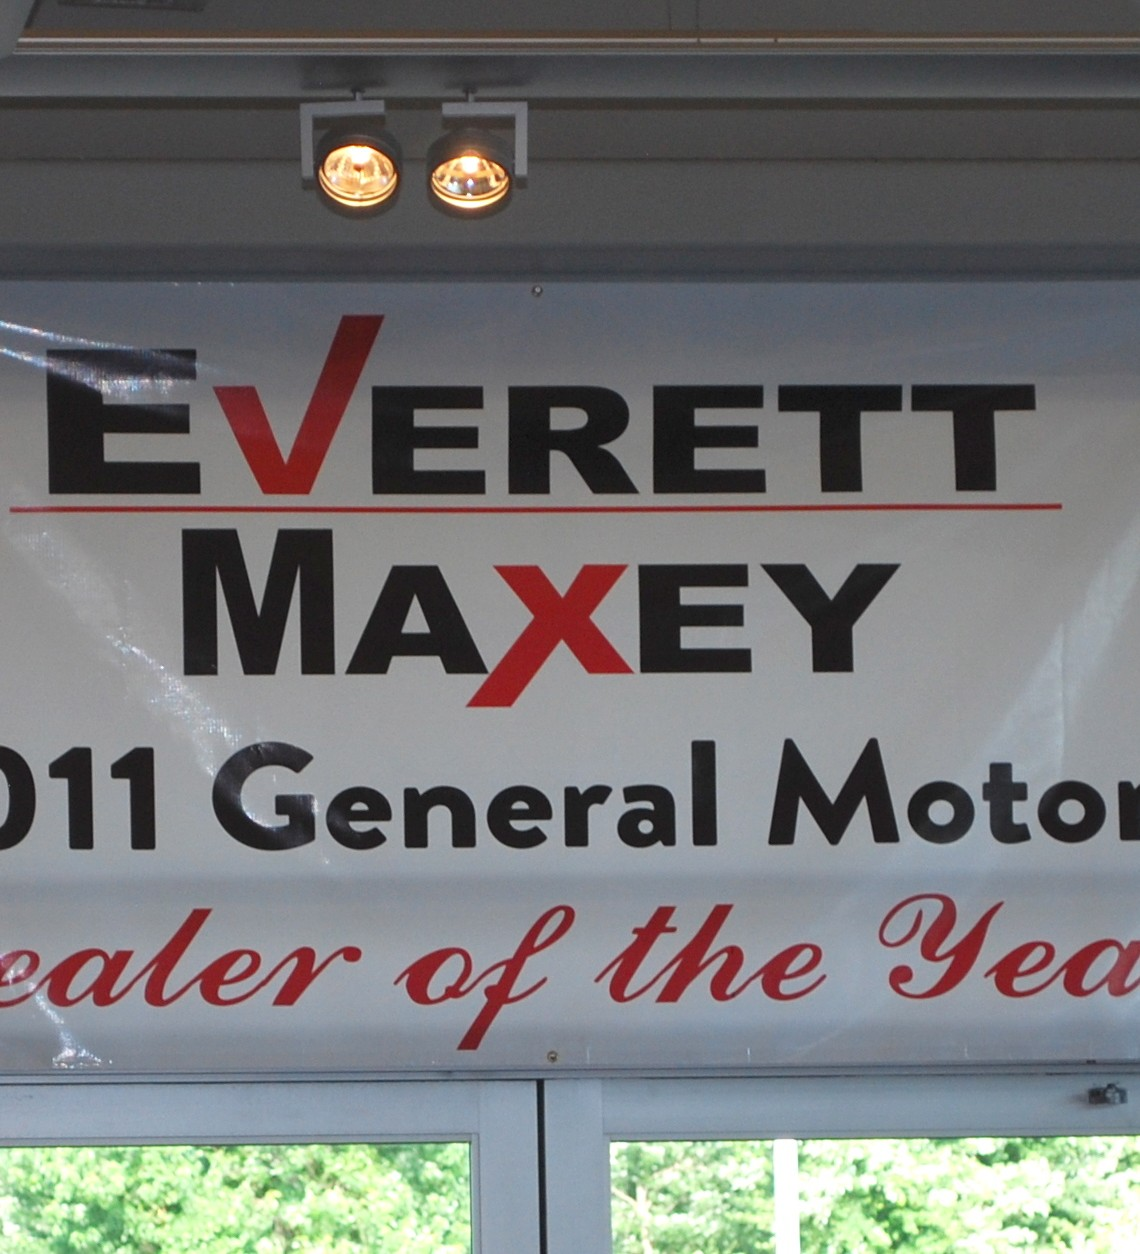 Everett Maxey–General Motors Dealer of the Year